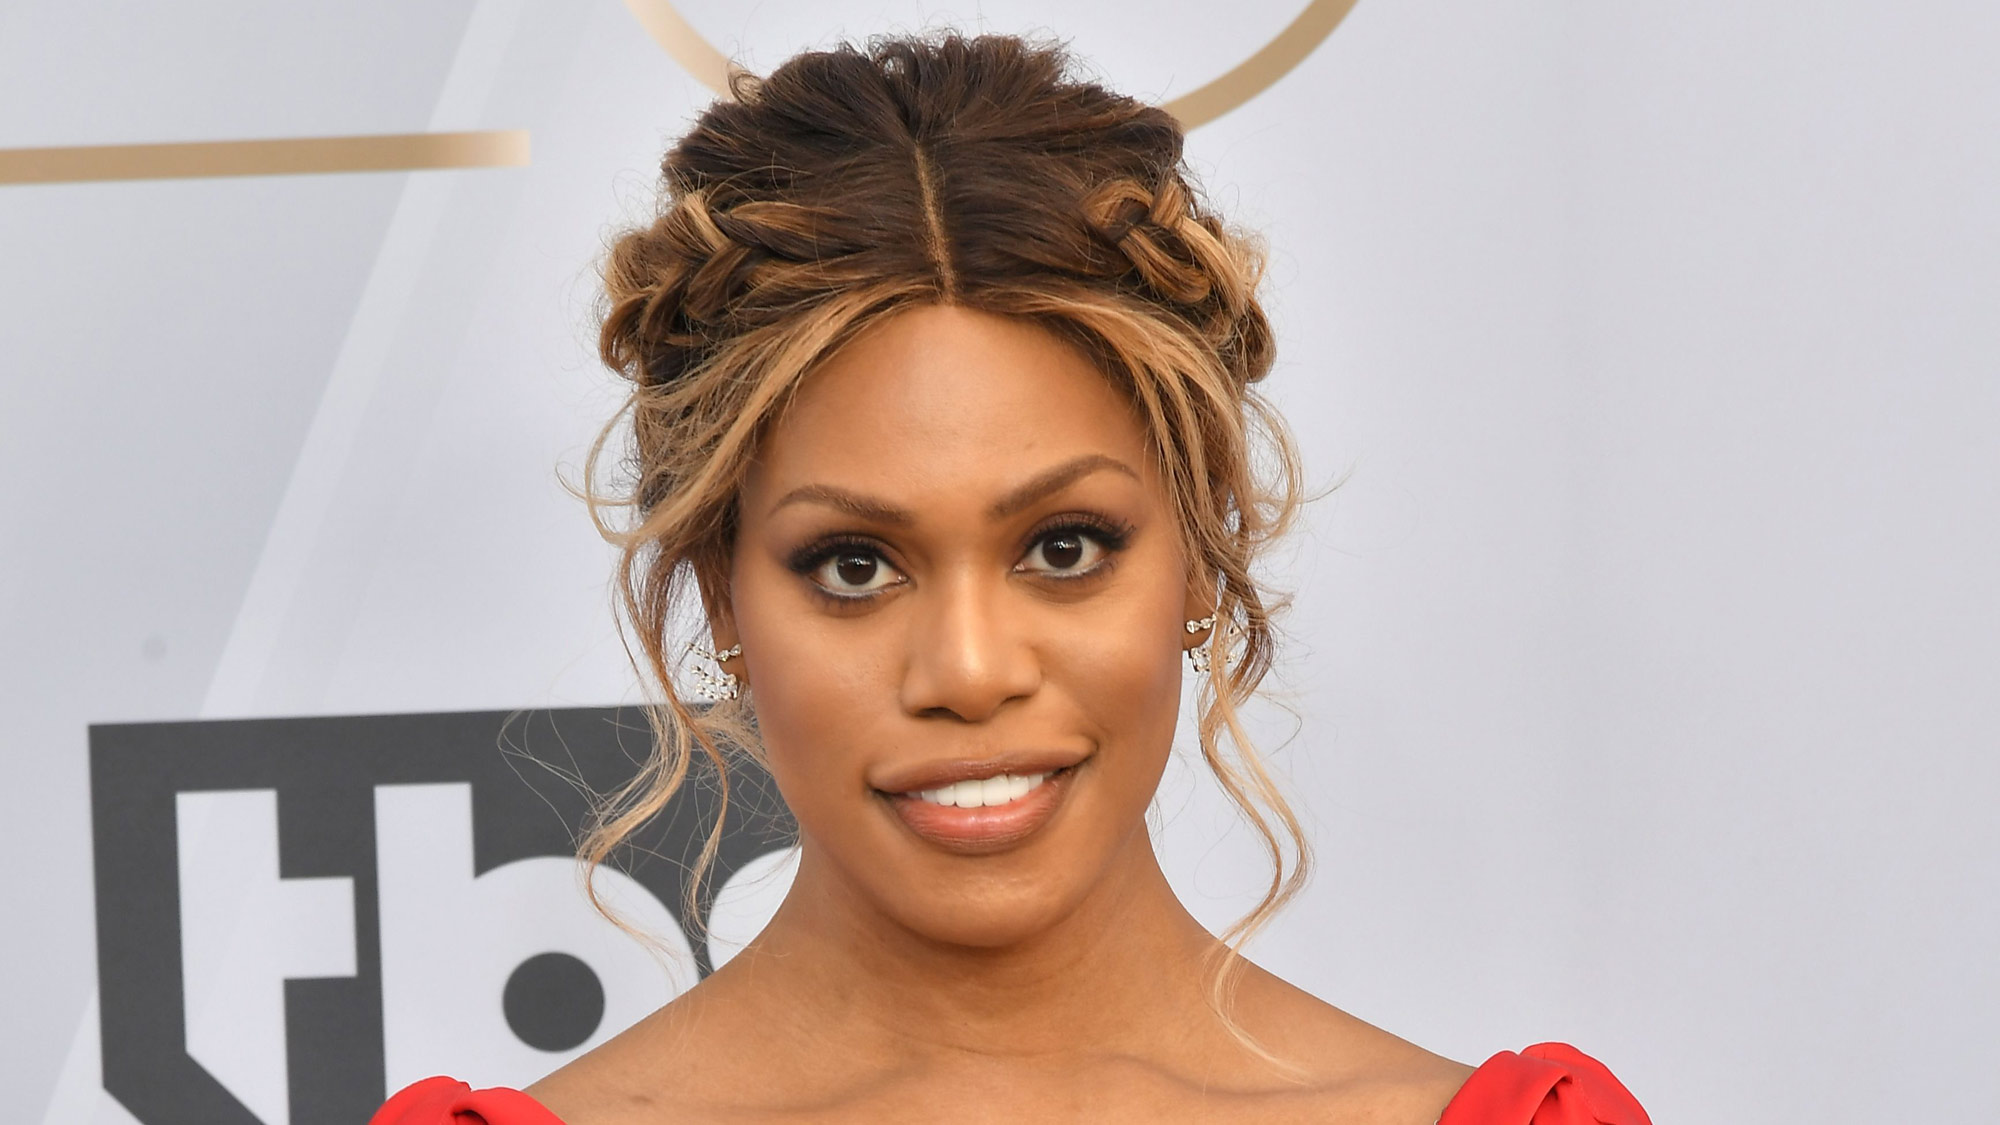 Plait Hairstyles To Take Straight To Your Hairdresser's